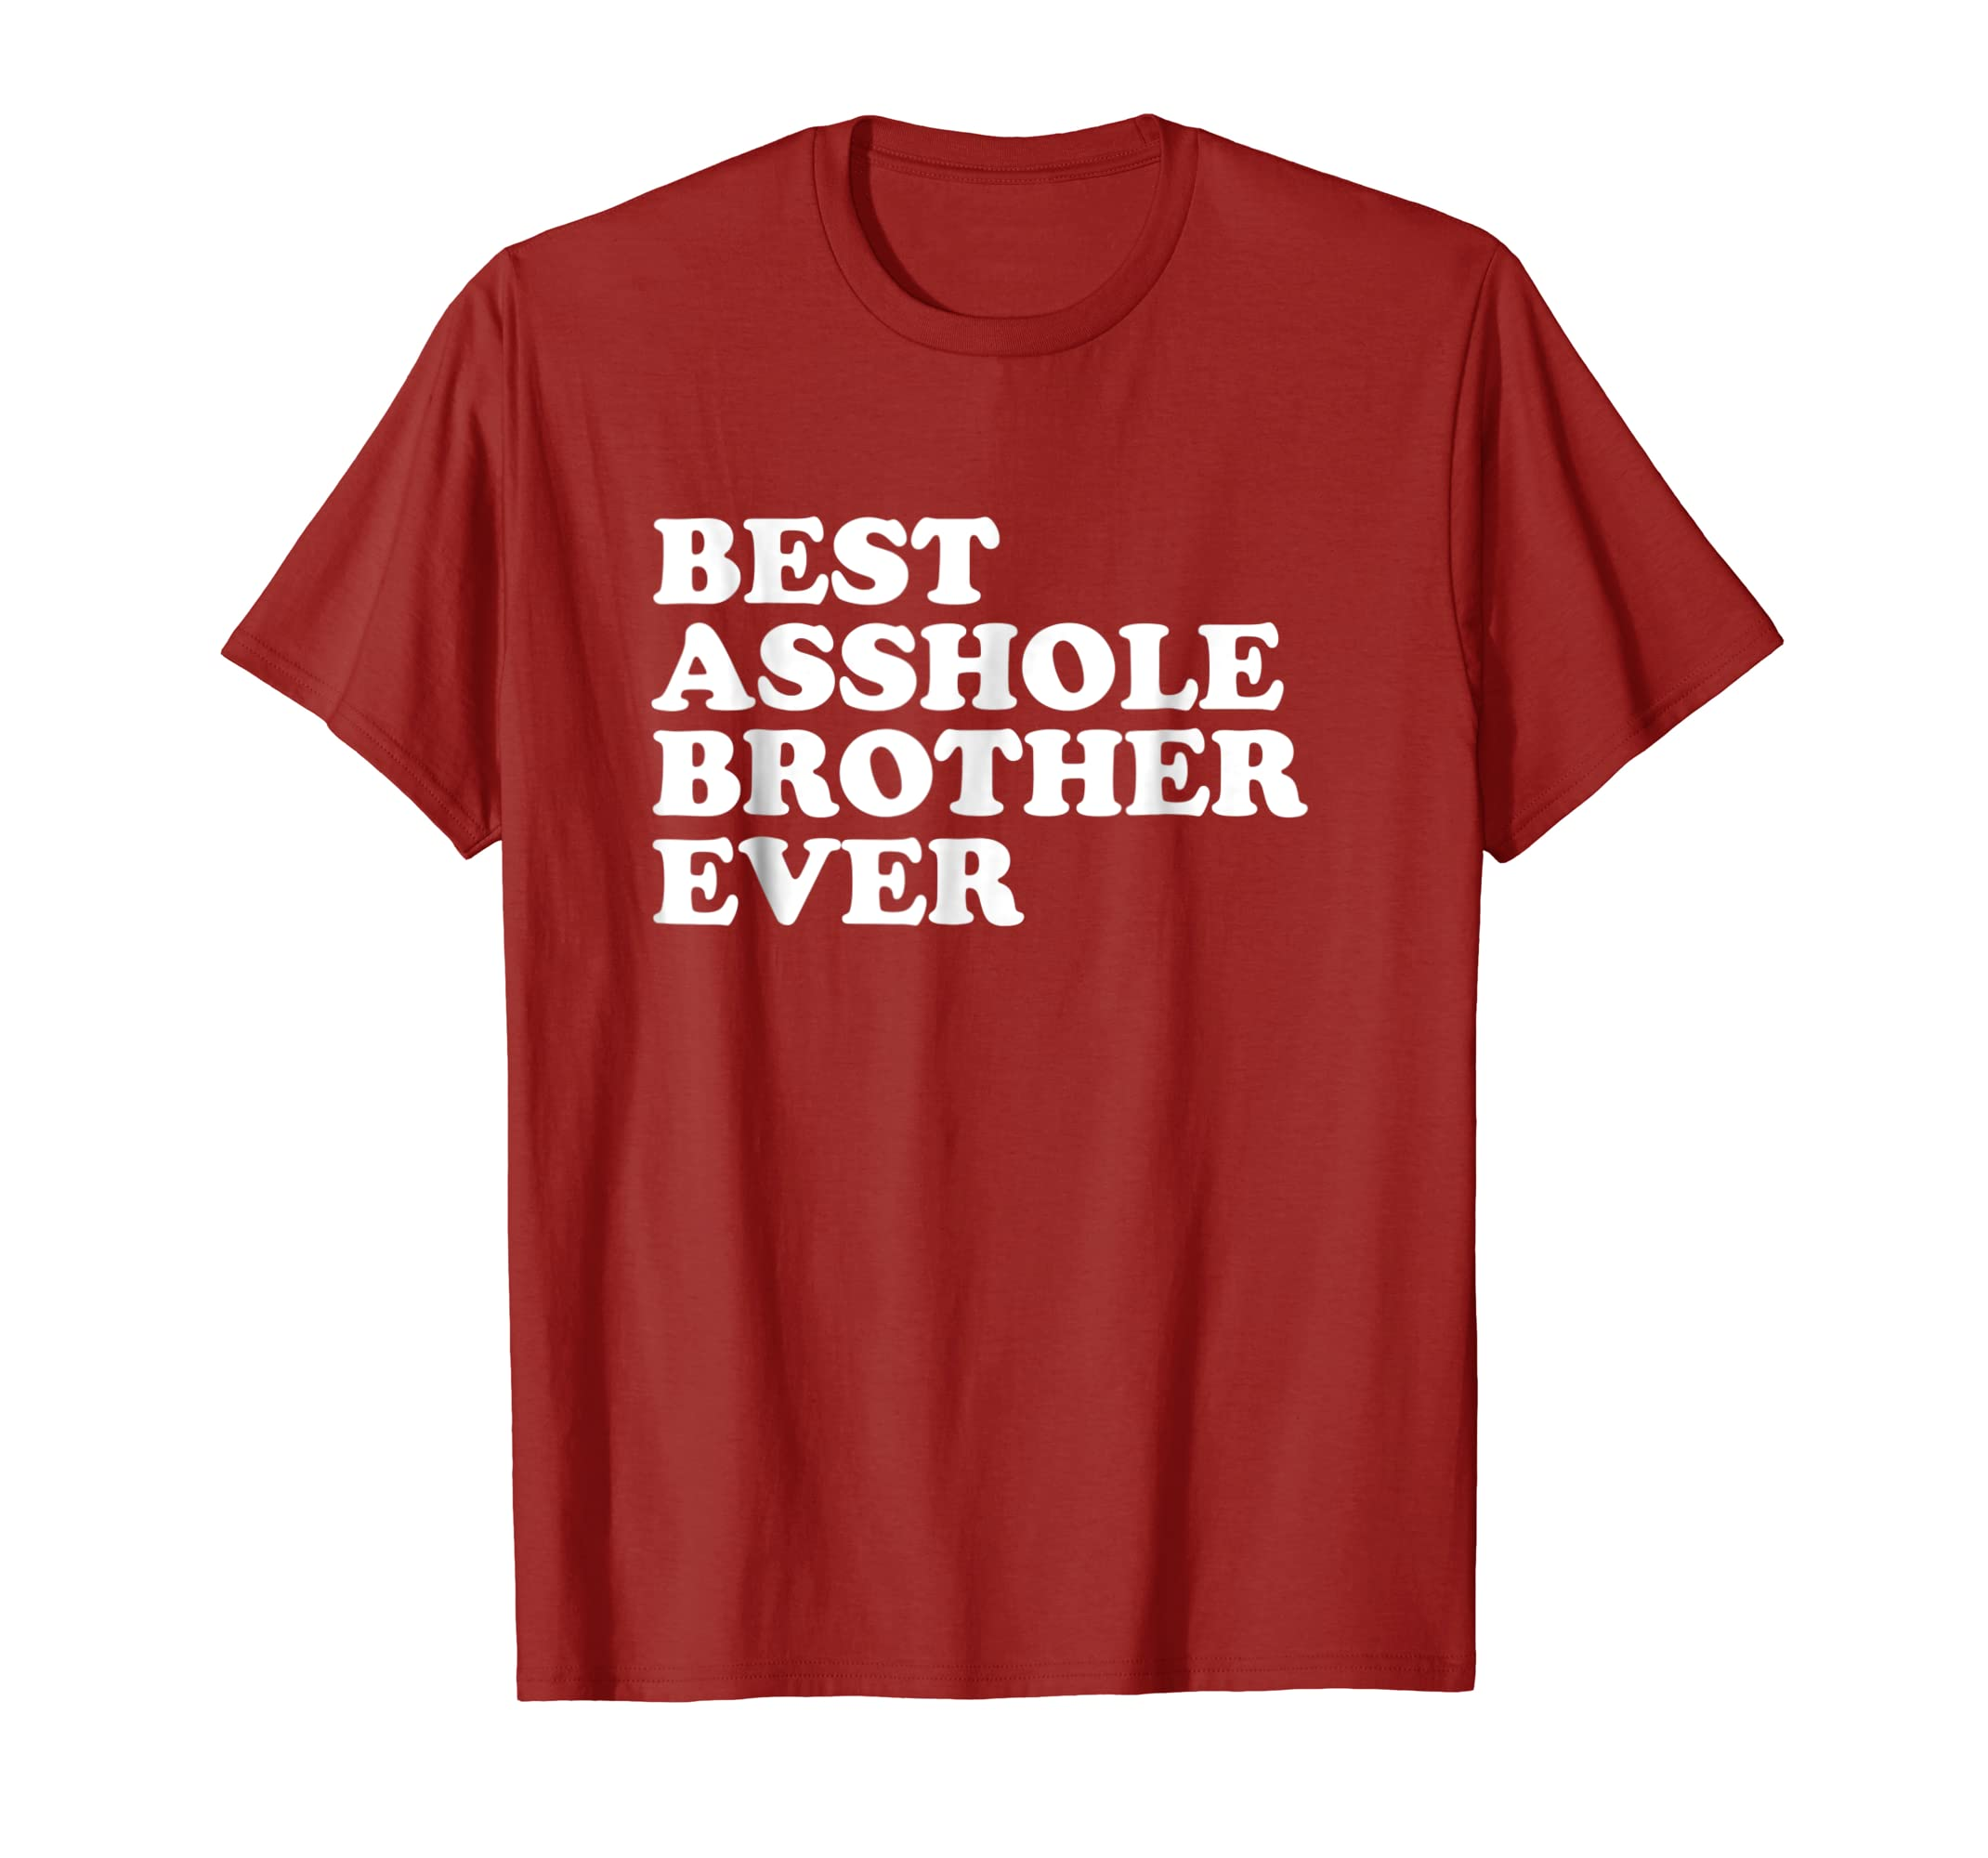 Mens Best Asshole Brother Ever T Shirt Funny Birthday Gift Teechatpro